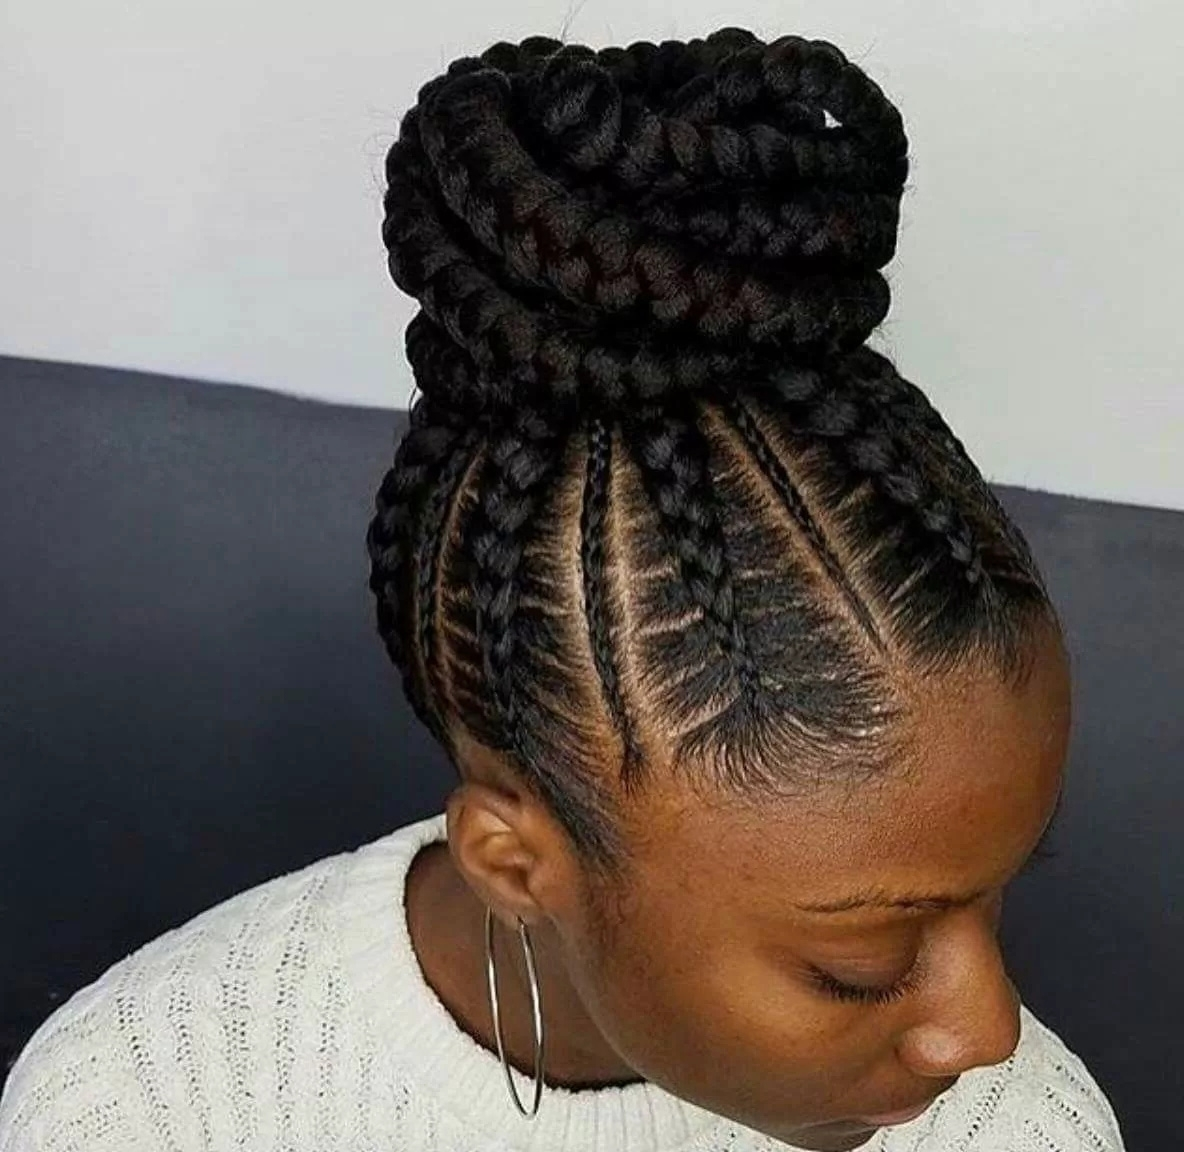 Top 10 African Braiding Hairstyles For Ladies (photos) – Information For Newest African Braided Hairstyles (View 14 of 15)